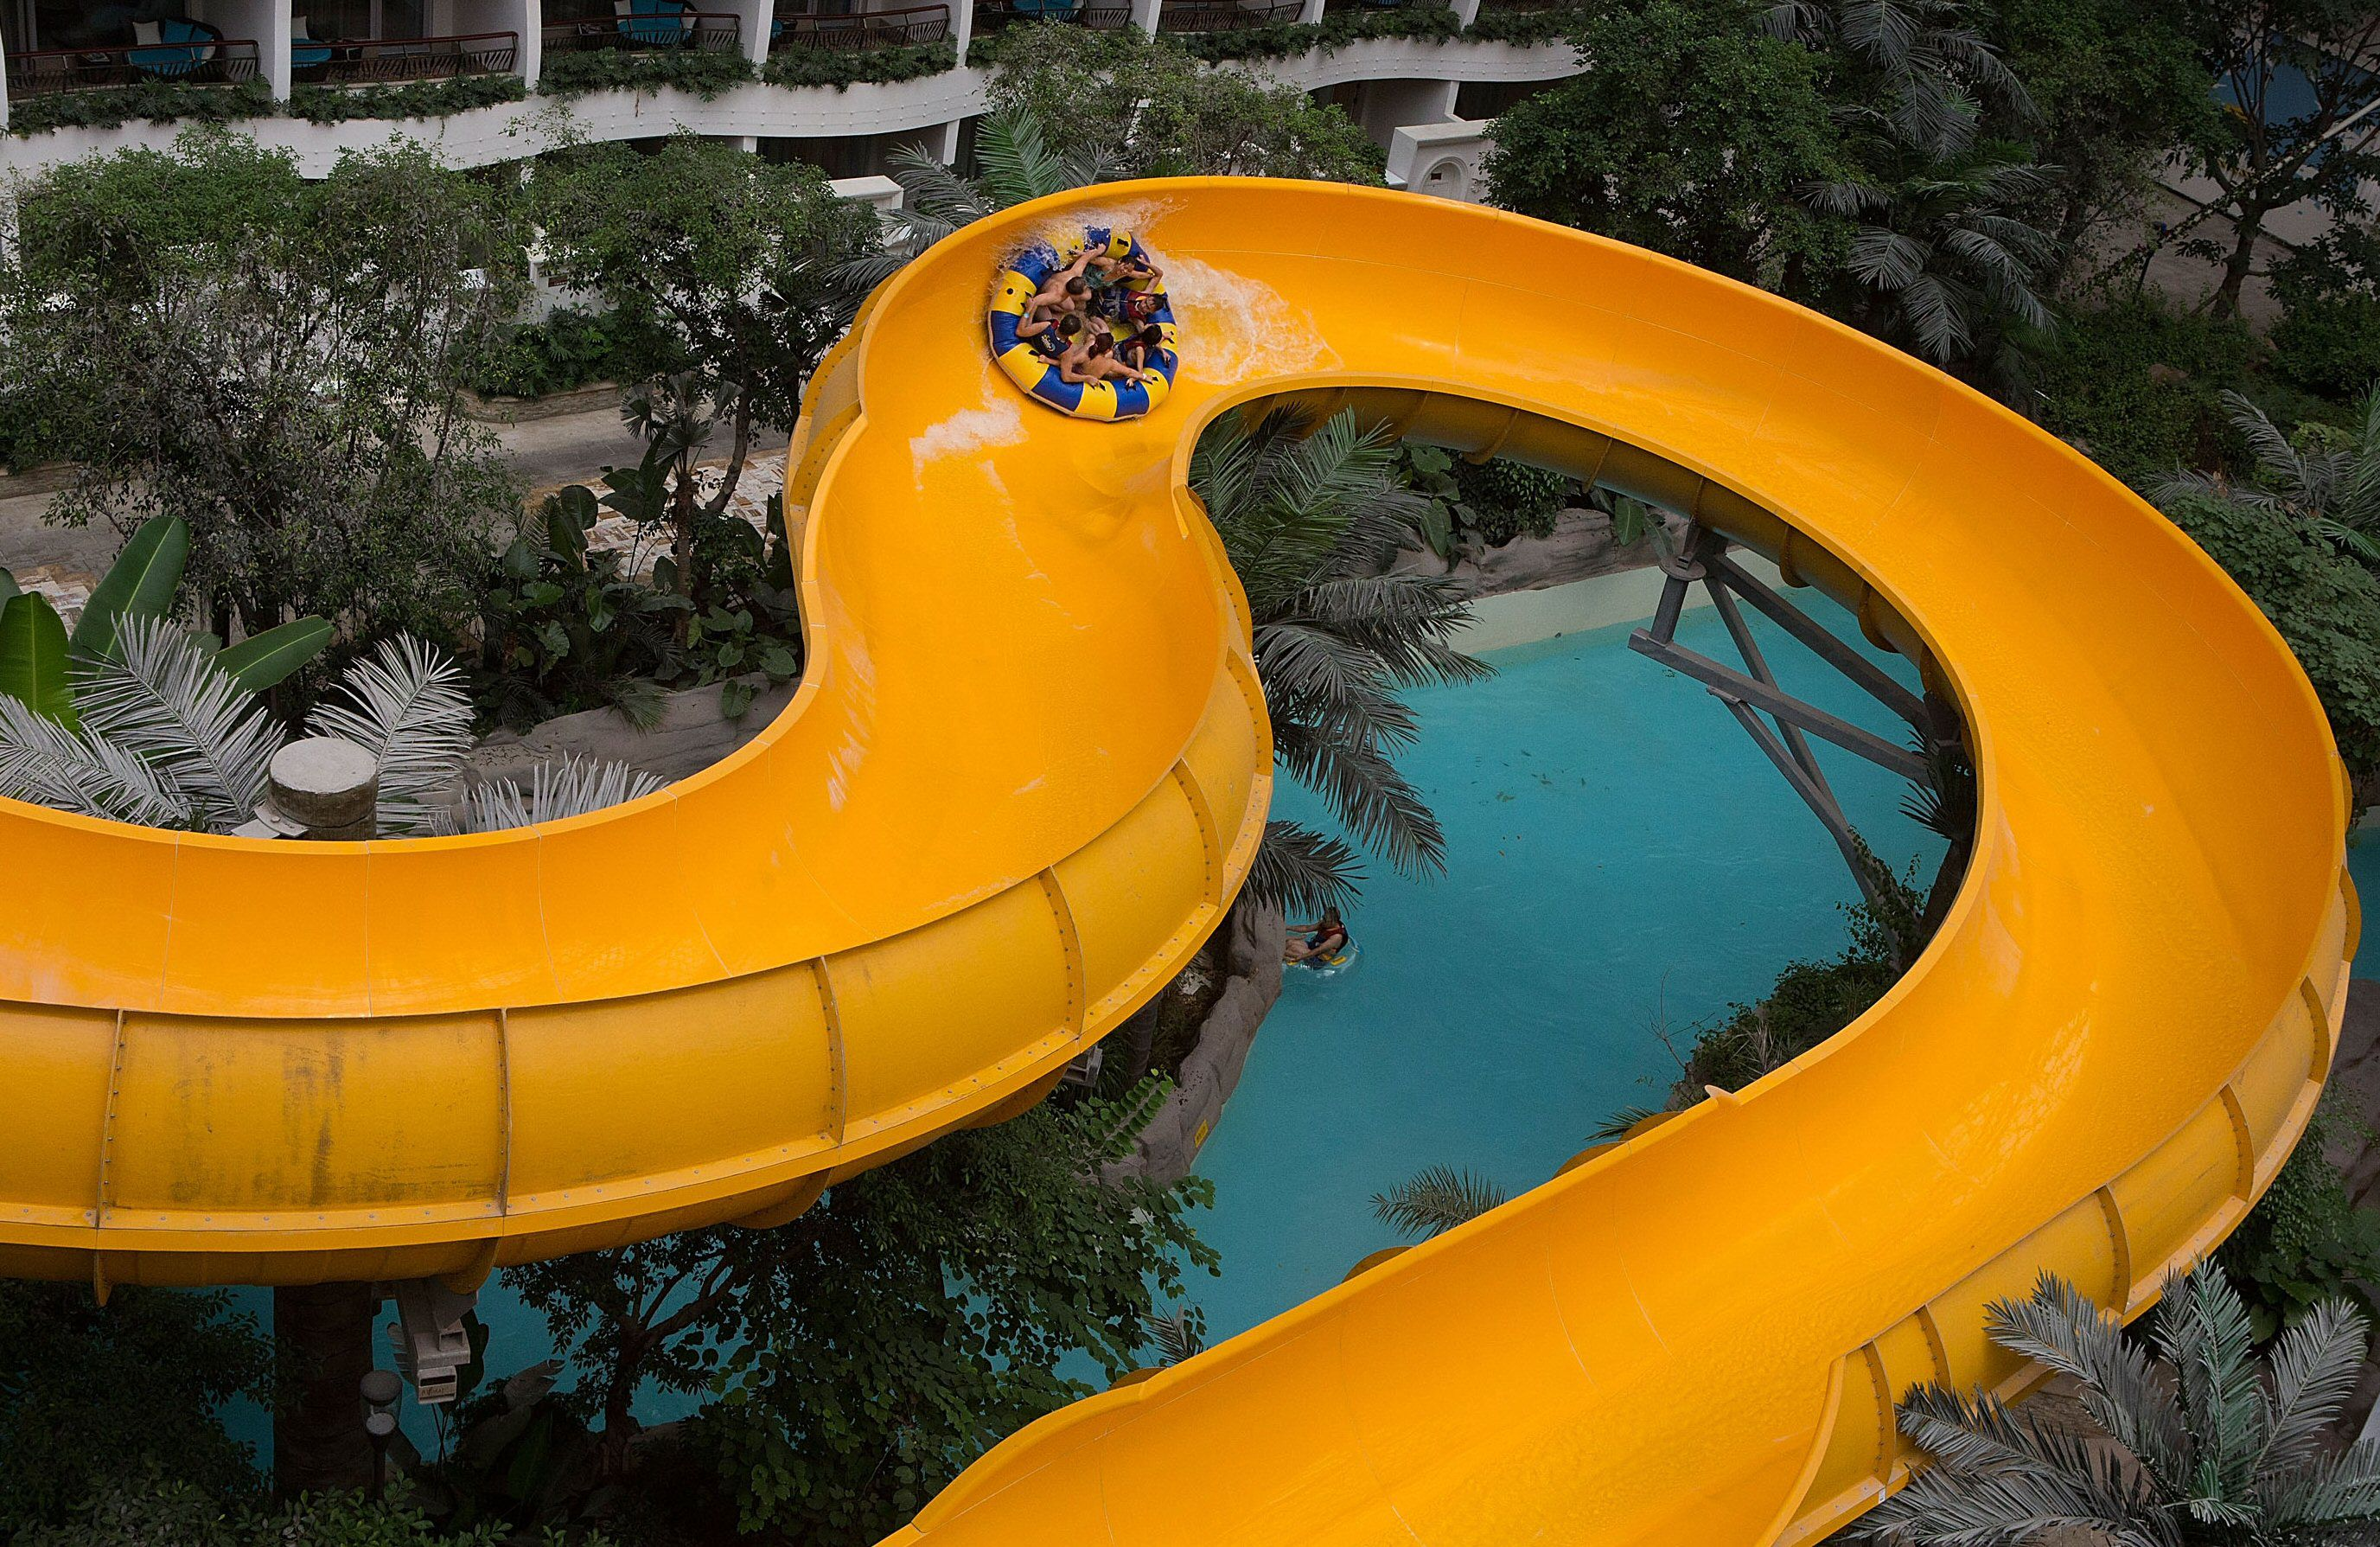 Family Raft Ride at the Paradise Island Water Park inside the New Century Global Center, Chengdu, China